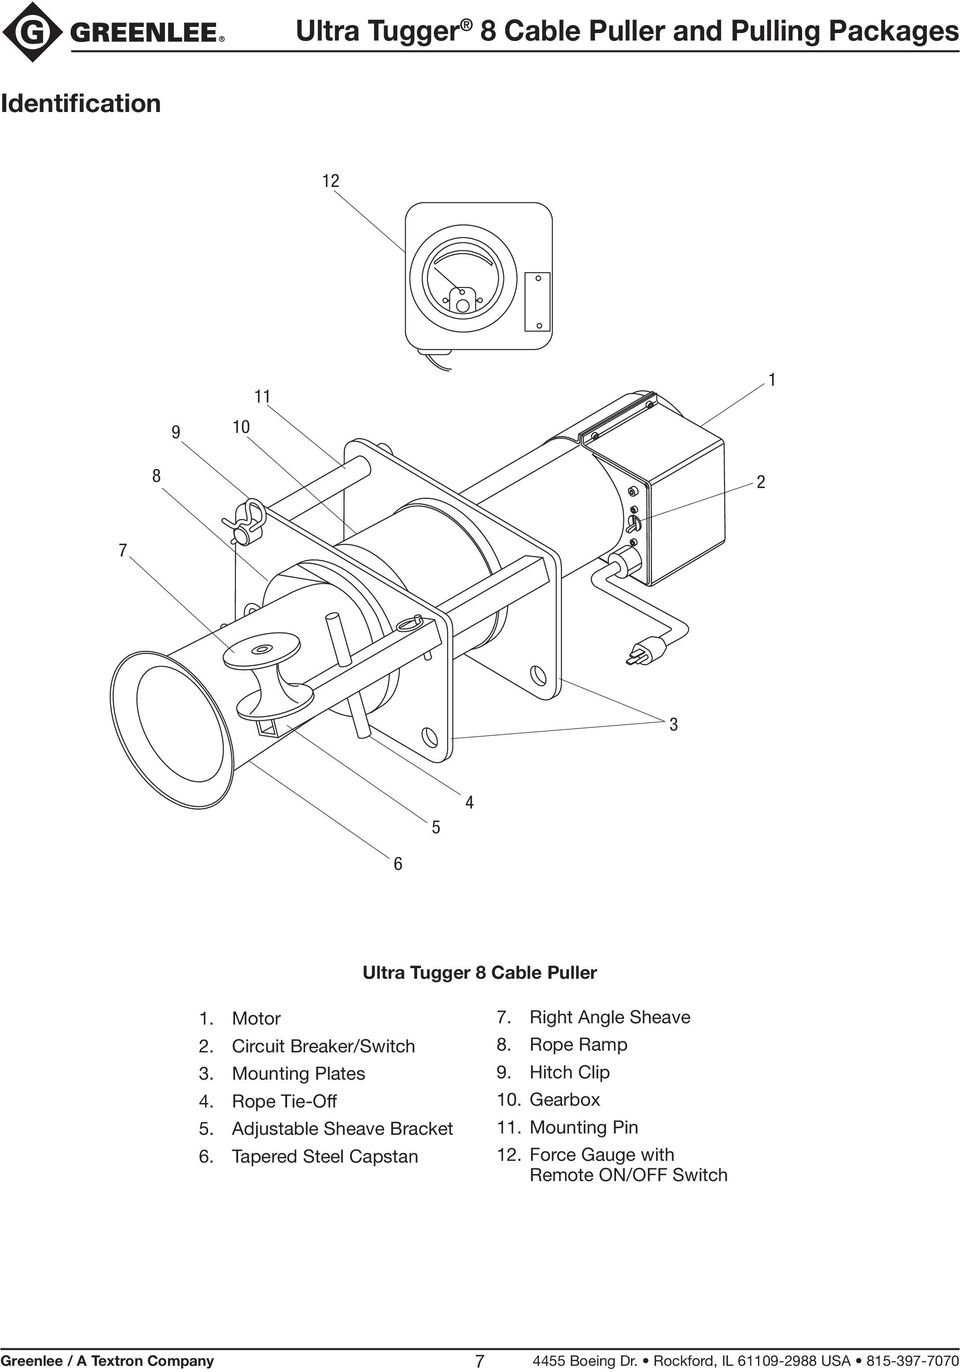 Ultra Tugger 8 Cable Puller and Pulling Packages - PDF